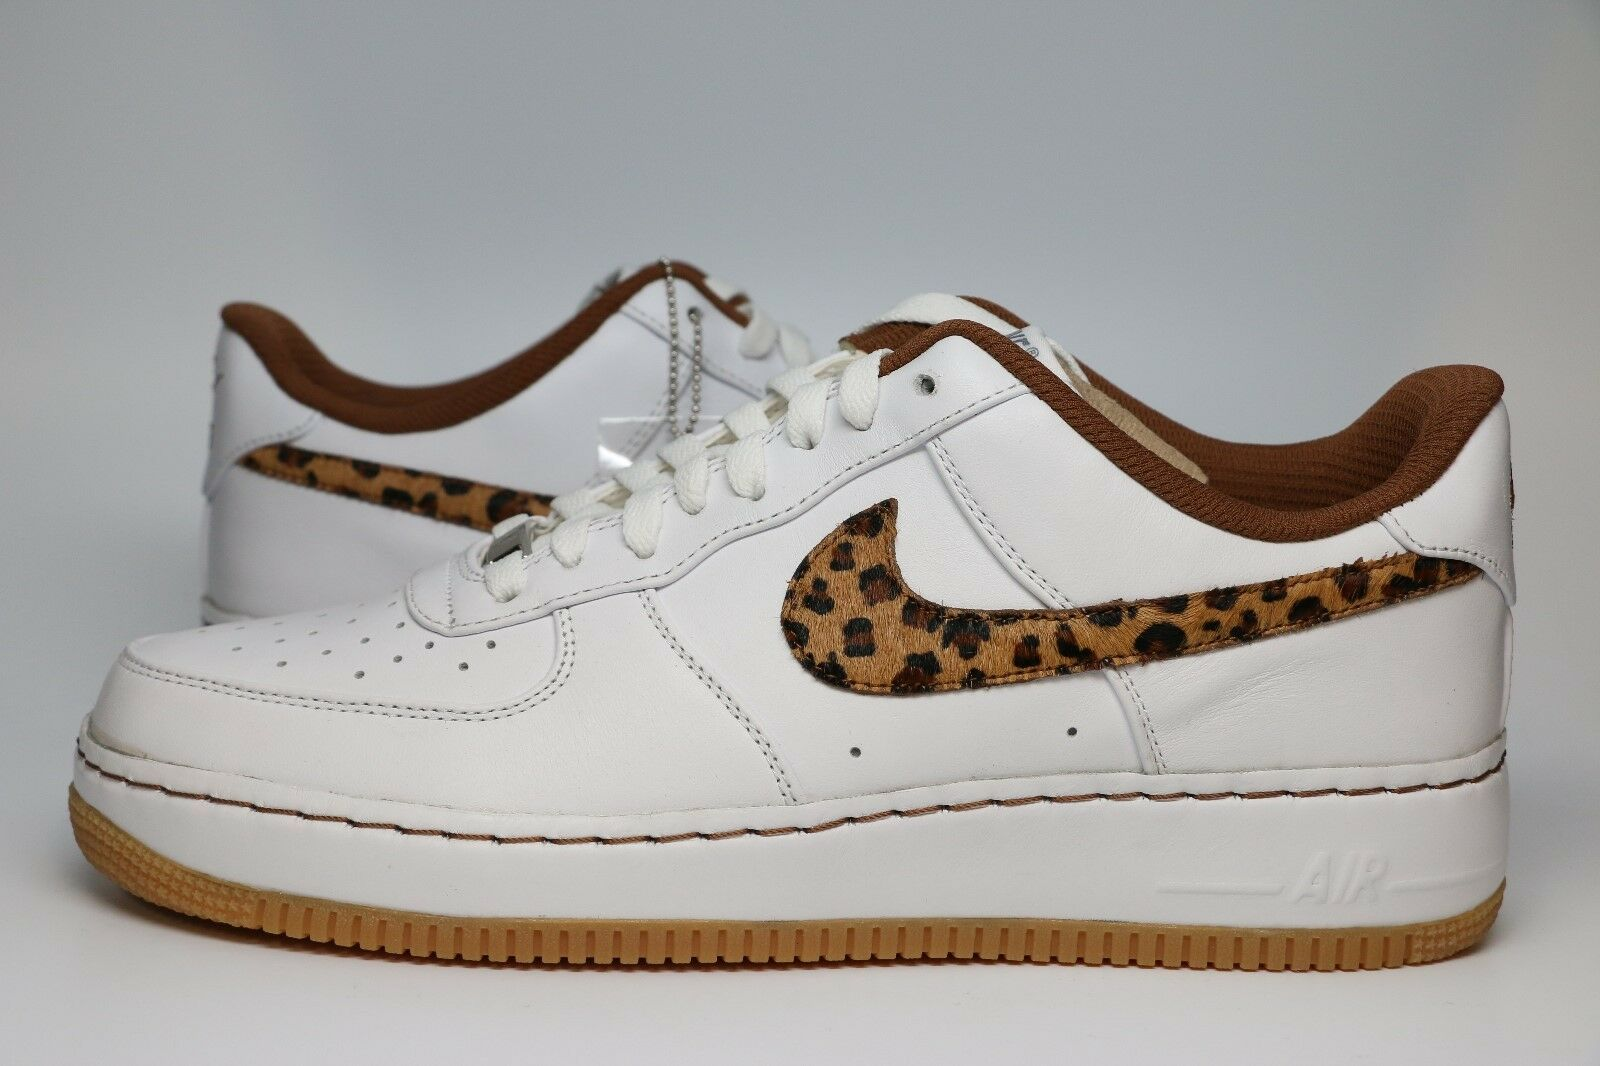 NikeID Air Force 1 Leather, Leopard Pony Hair   Size 10.5   Style 574263-979